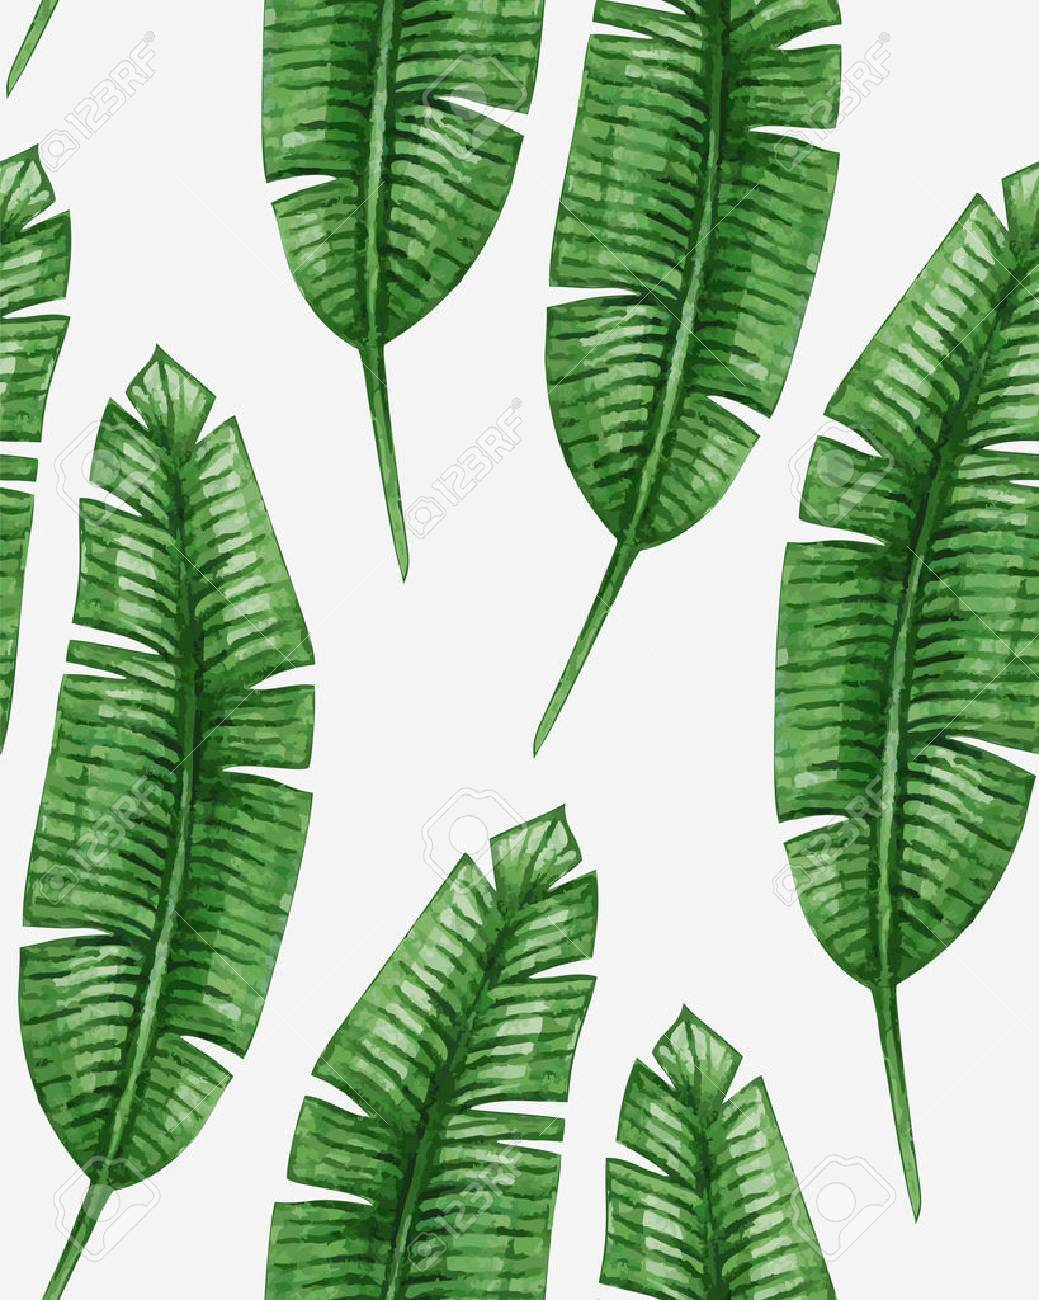 Watercolor tropical palm leaves seamless pattern - 45008019